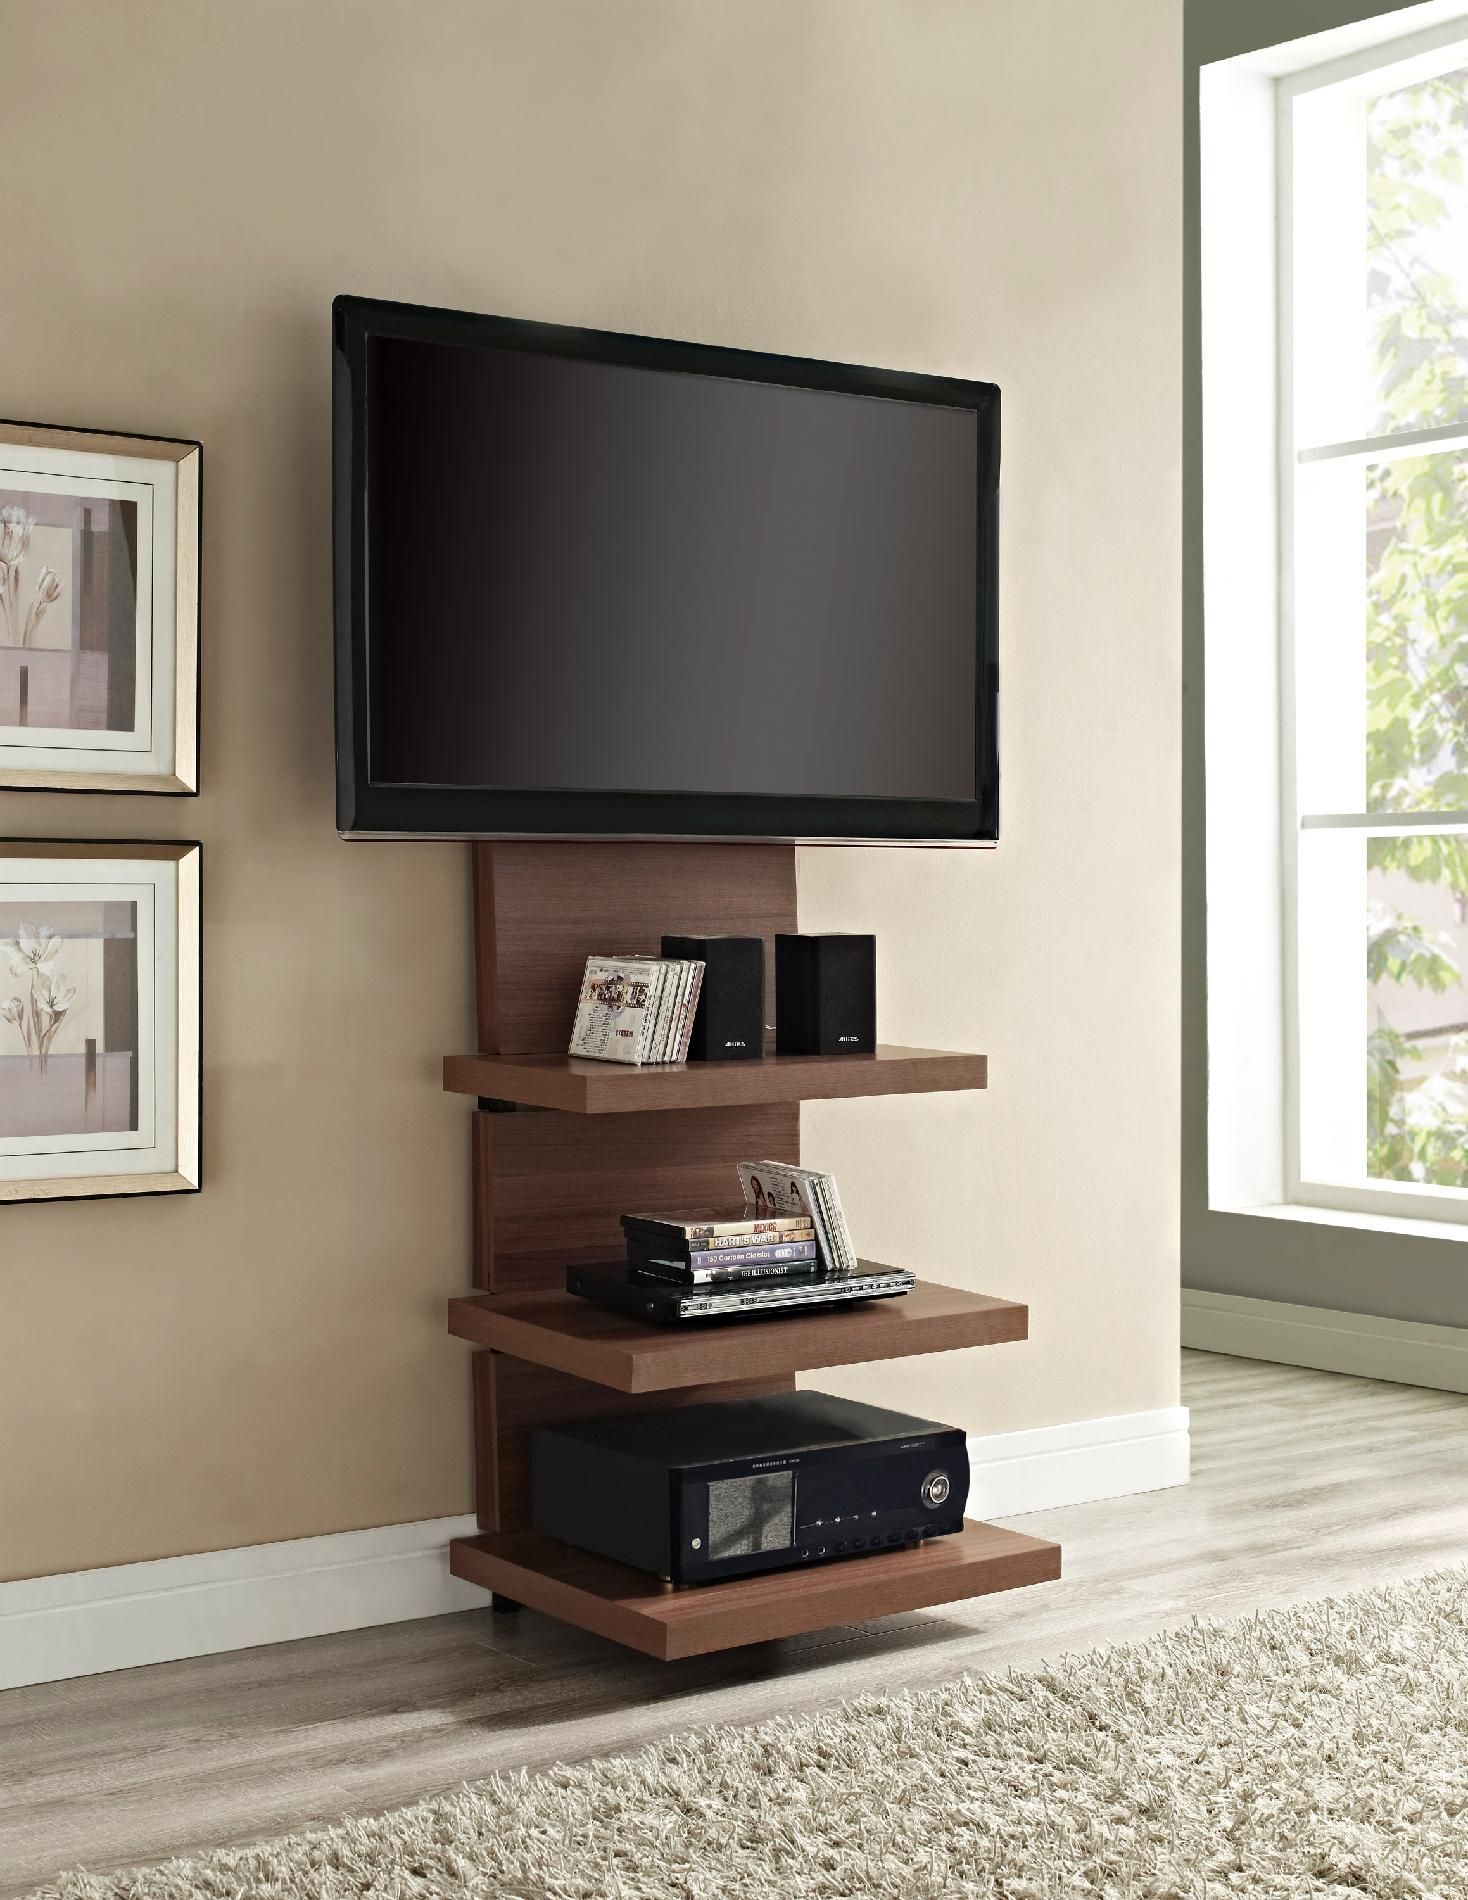 Chic And Modern Tv Wall Mount Ideas For Living Room Modern Tv